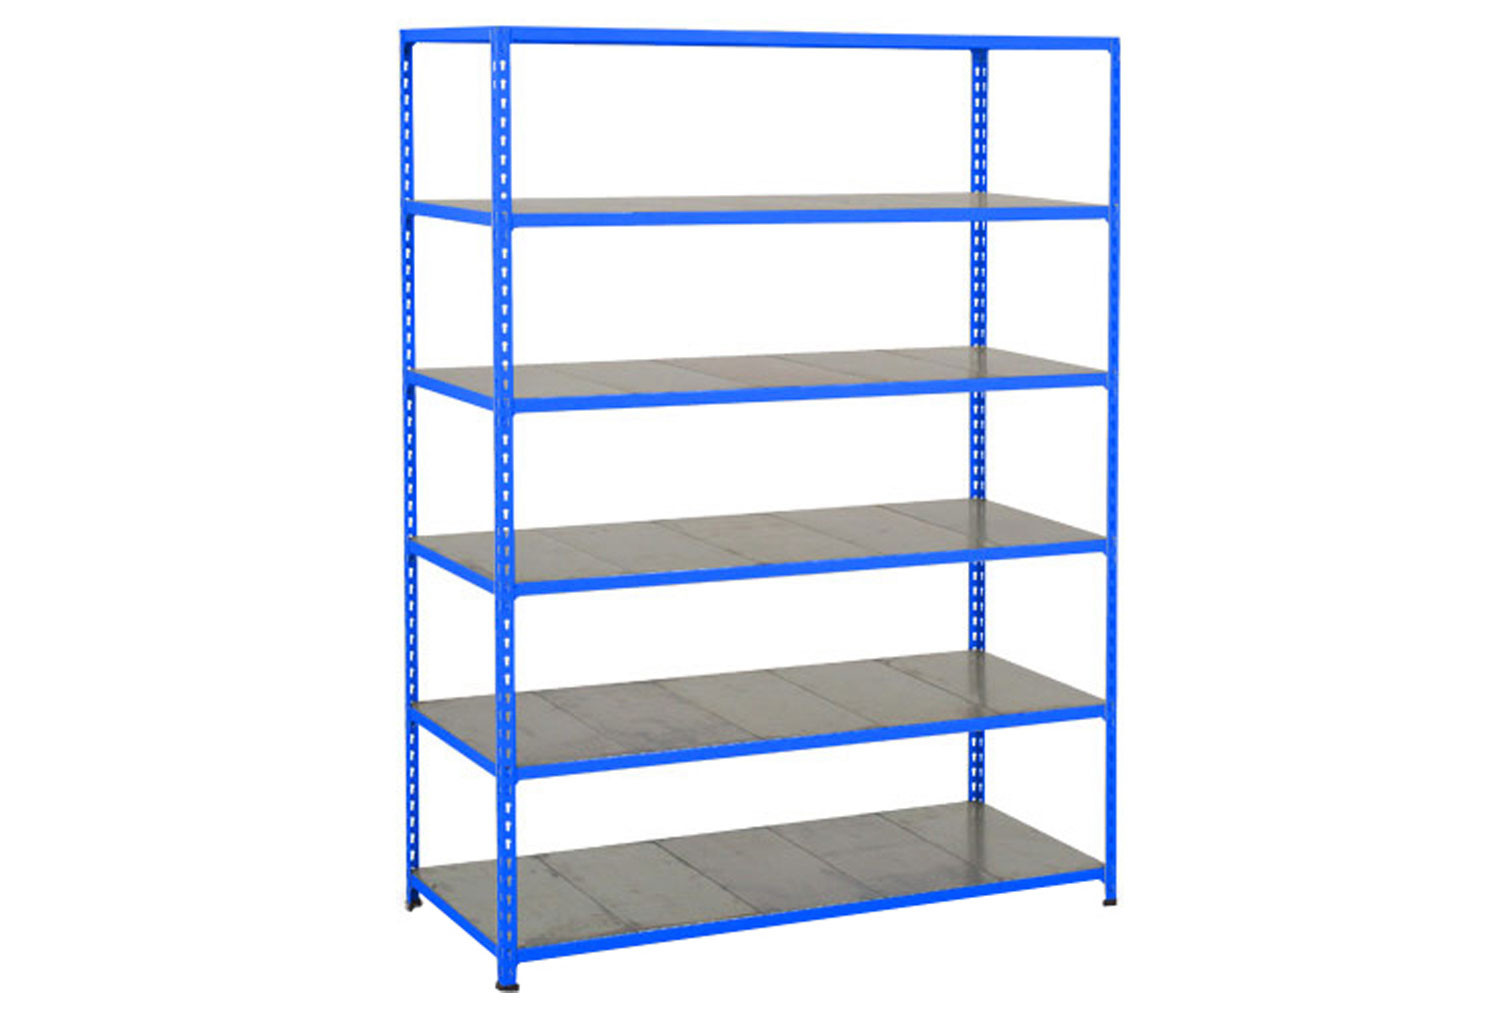 Rapid 2 Shelving With 6 Galvanized Shelves 1220wx1980h (Blue)